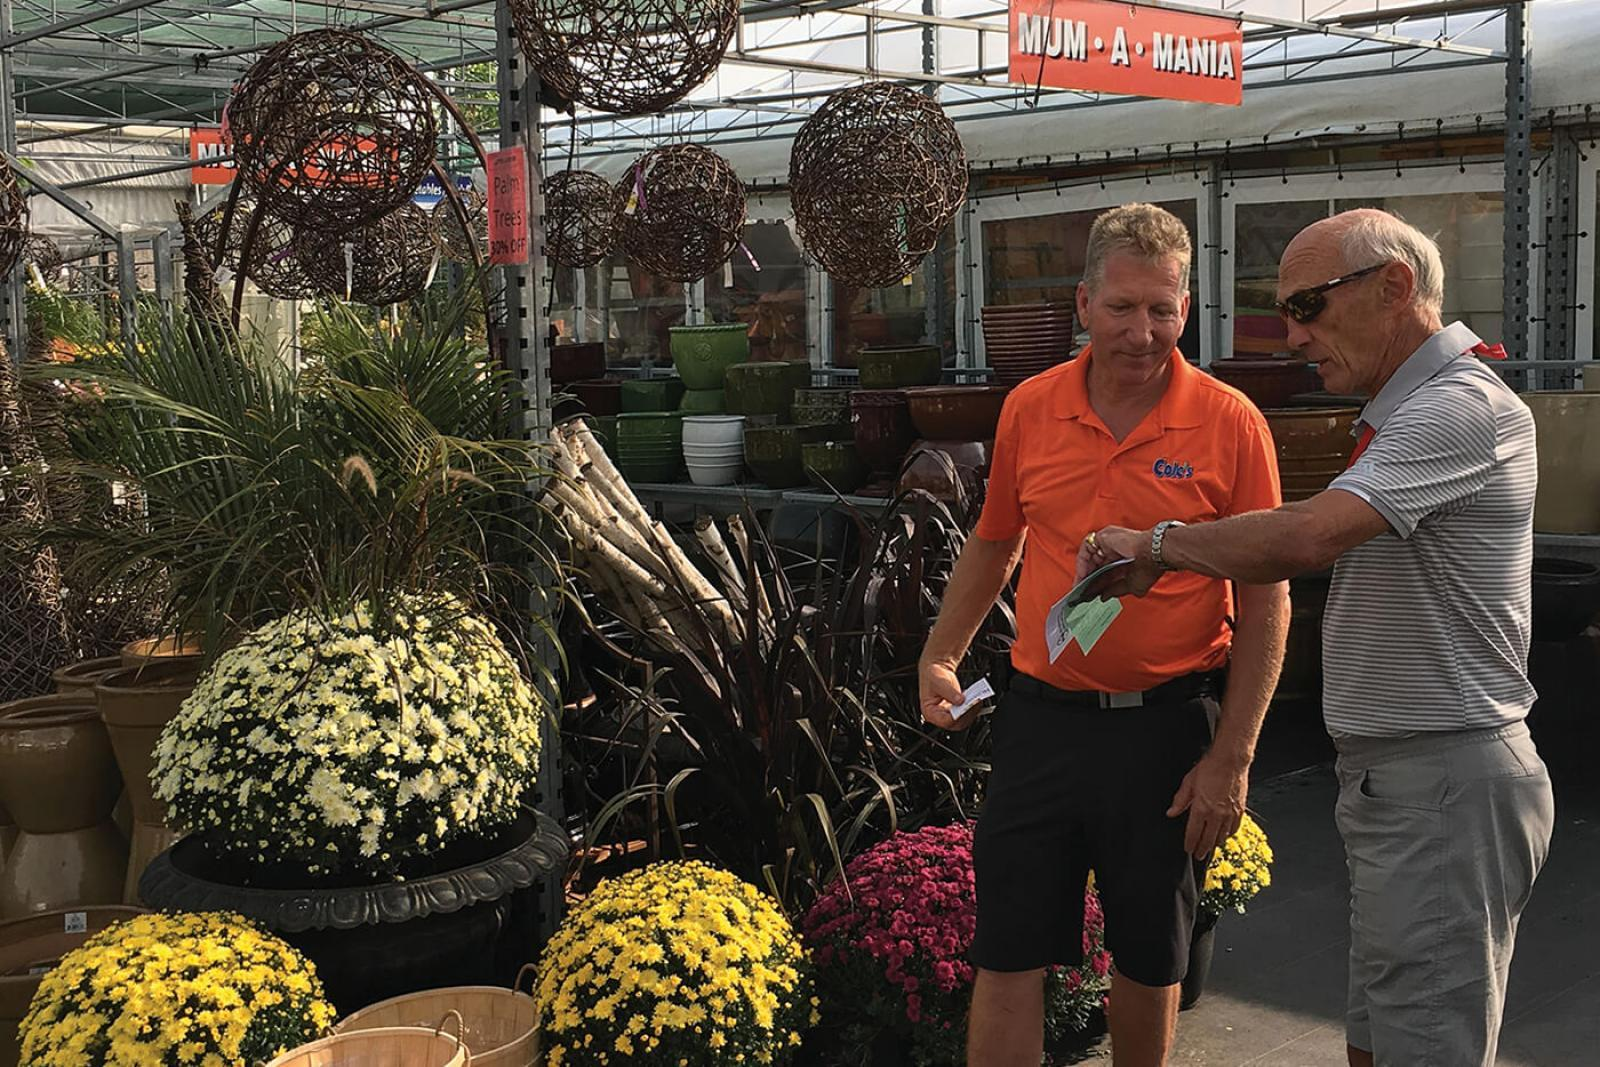 Garden centre tours are part of the two-day event.